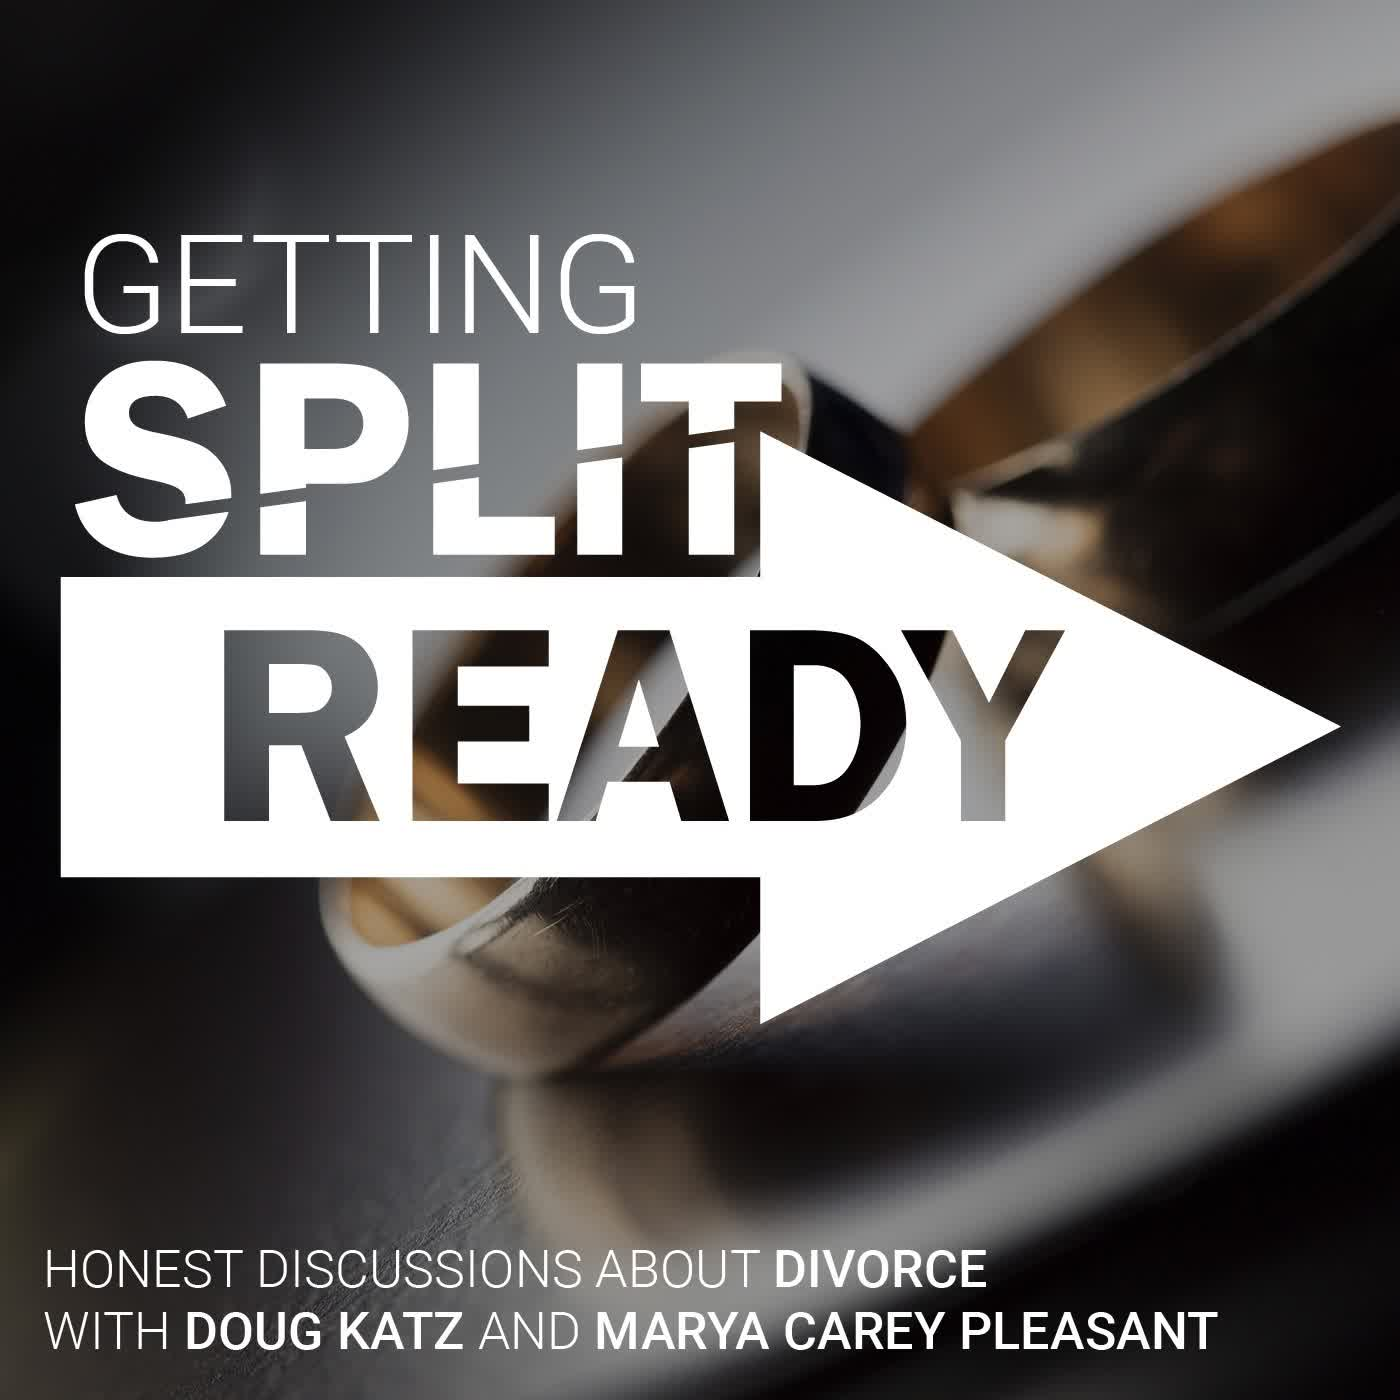 Getting Split Ready Episode 17.3: Playing the Blues - Dealing with Divorce Related Depression